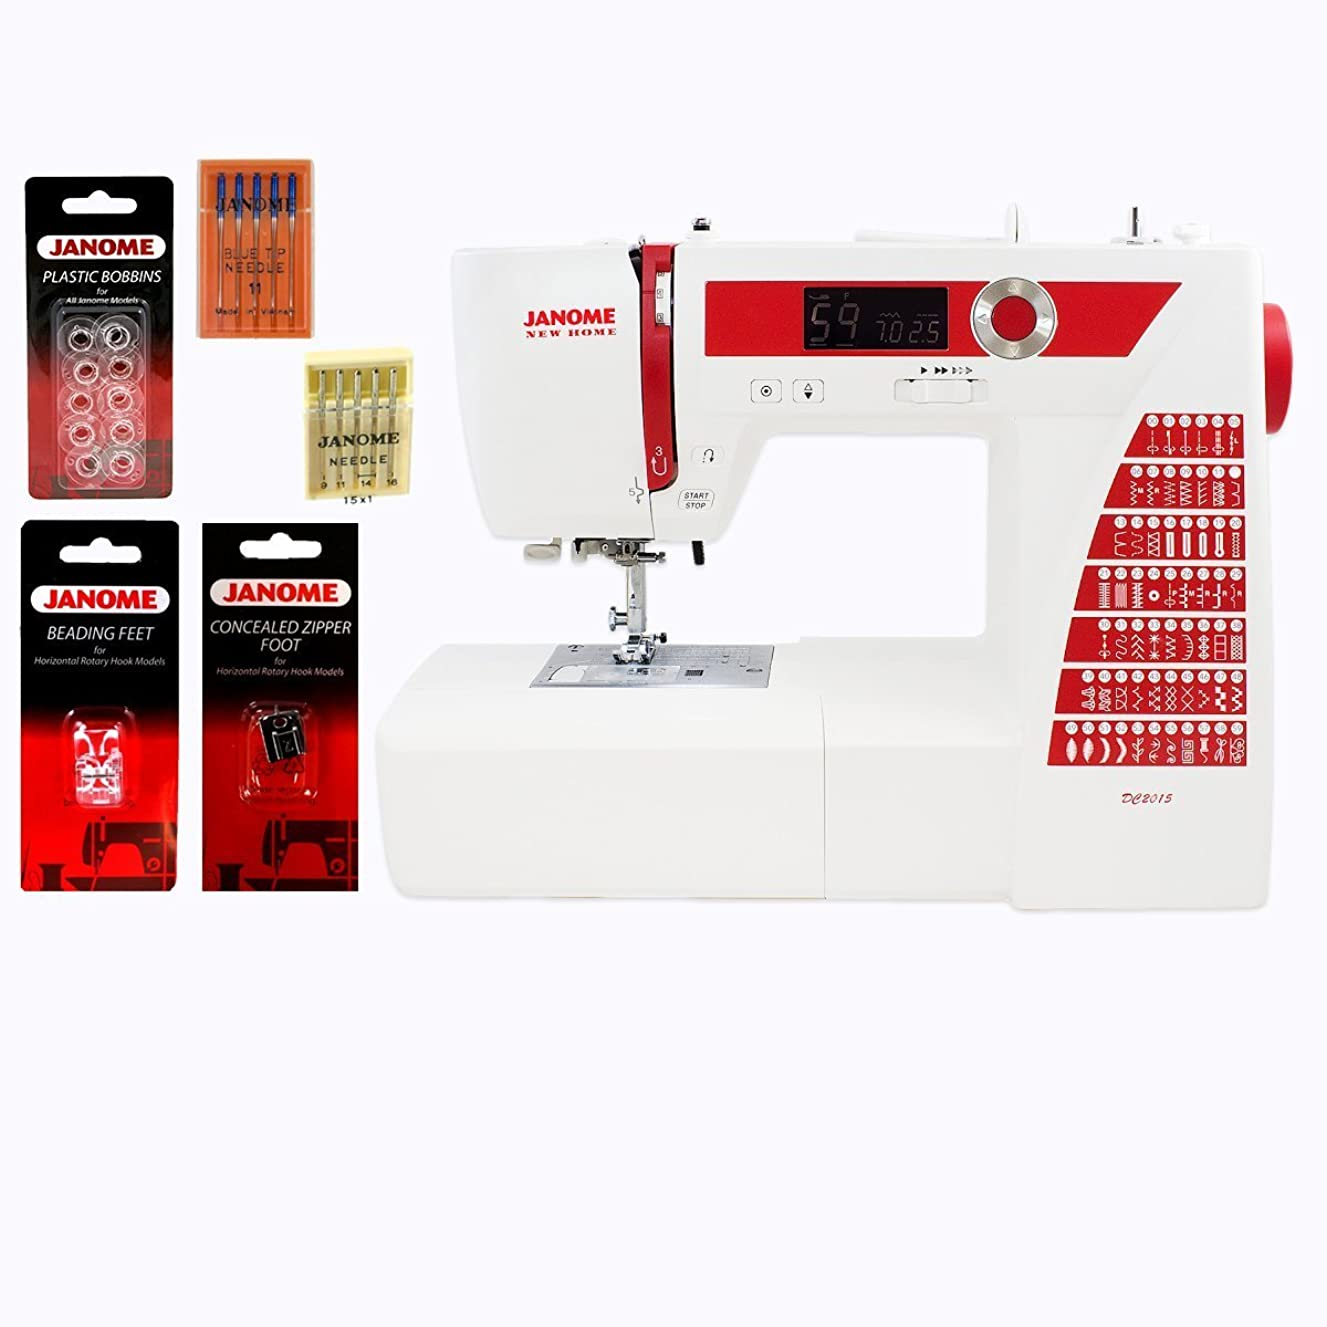 Janome DC2015 Computerized Sewing Machine with Accessories